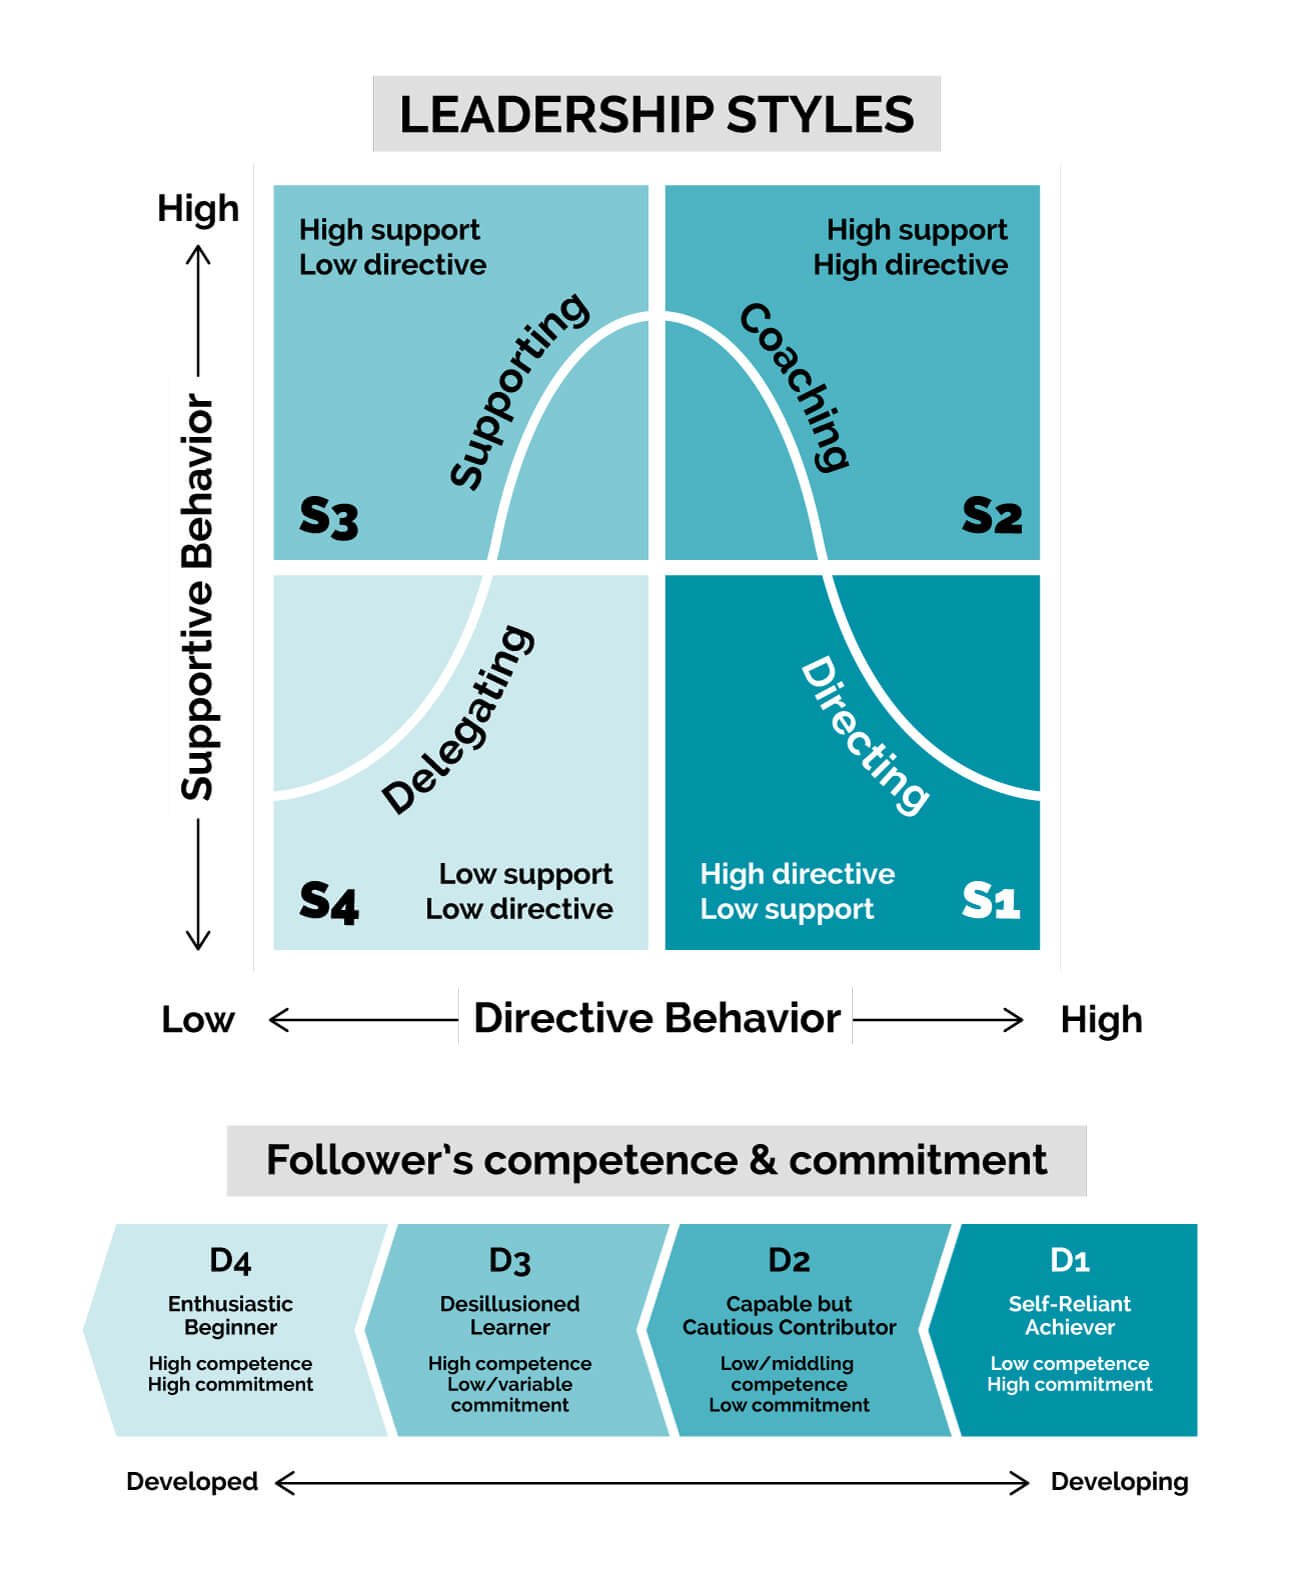 Situational Leadership framework designed by Blanchard and Hershey